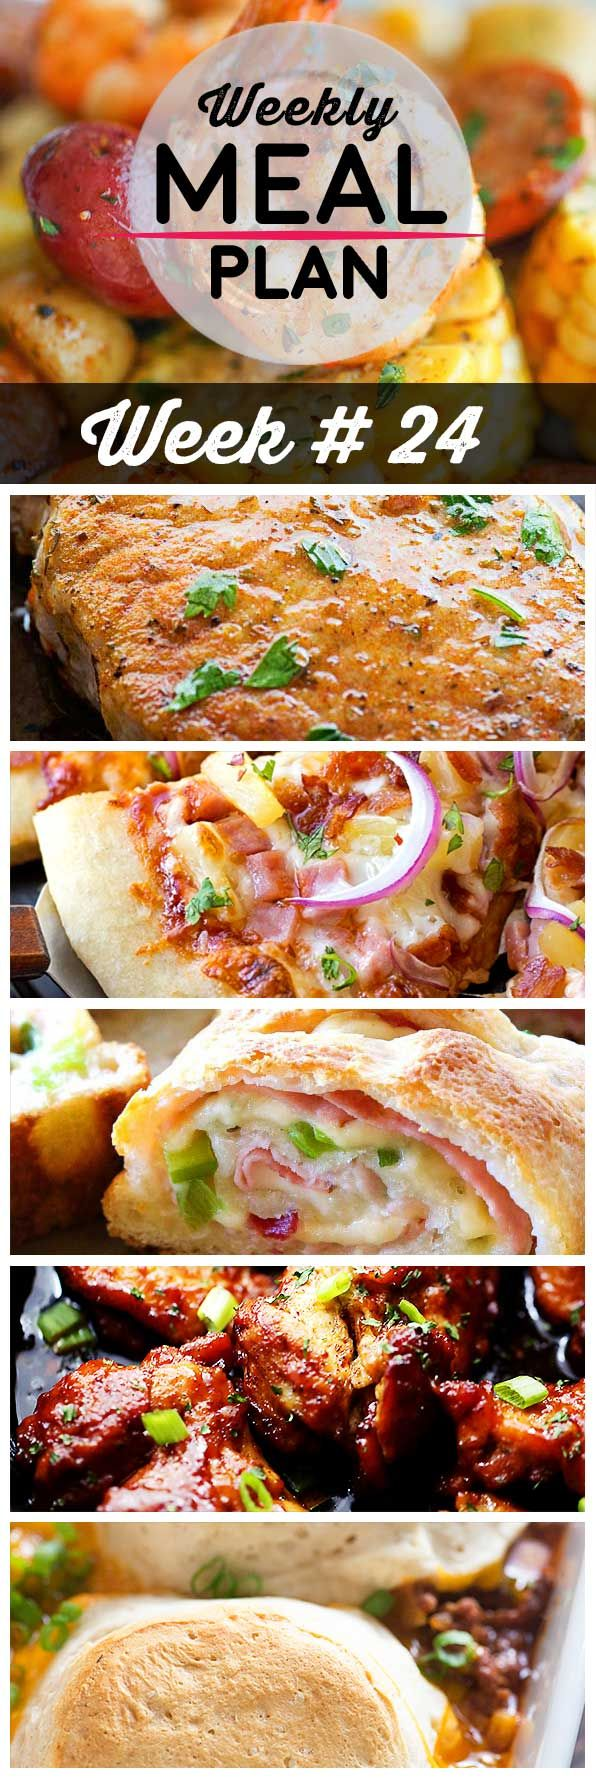 Weekly Meal Plan #24! A meal plan to help you keep things tasty each week, including shrimp foil packets, smoky ranch pork chops, Hawaiian BBQ pizza, and more!   HomemadeHooplah.com